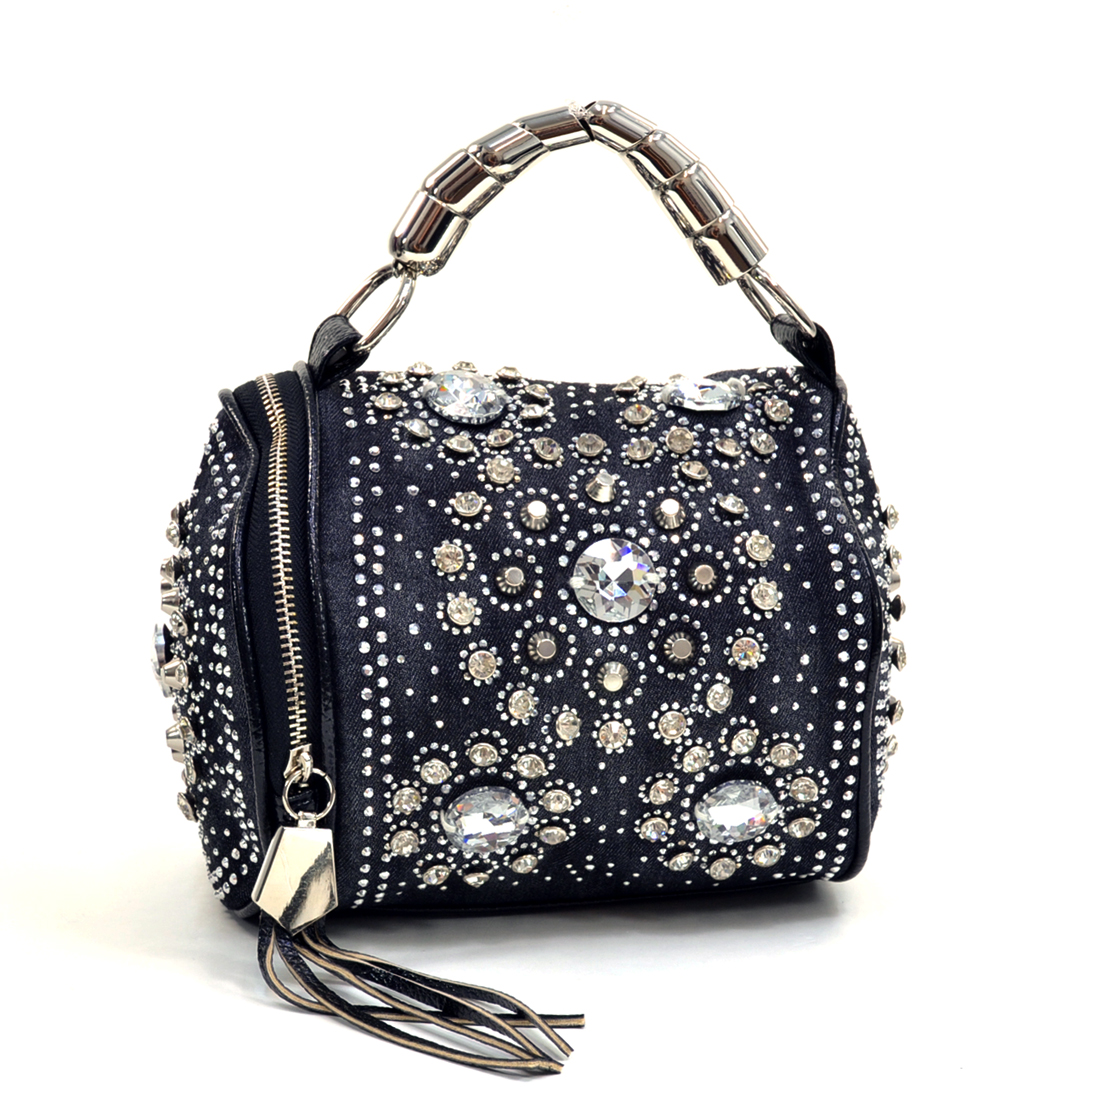 Rhinestone and Studs Woven Denim Barrel Bag w/Removable Shoulder Strap